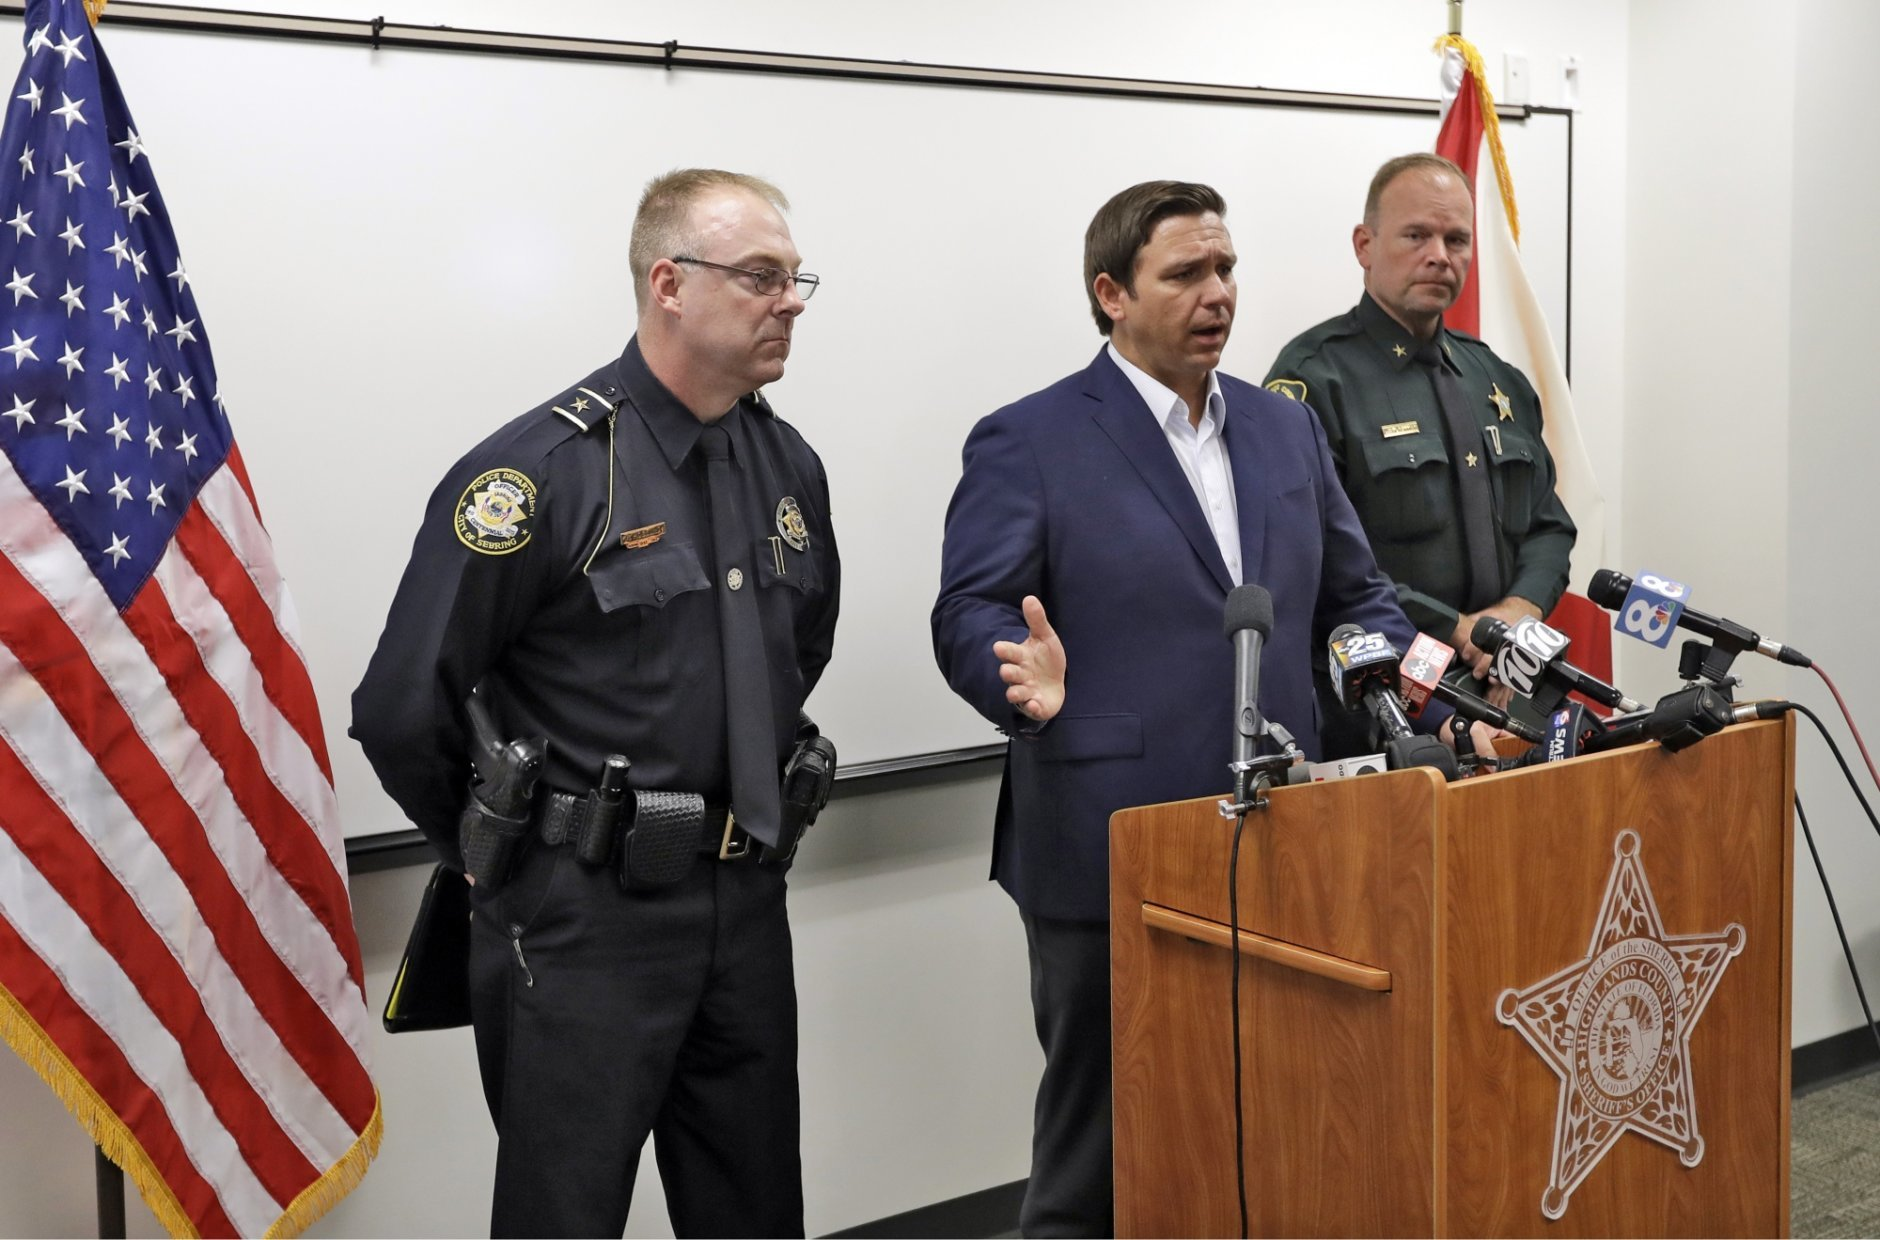 Florida Gov. Ron DeSantis, center, gestures as he speaks during a news conference alongside Sebring, Fla., police chief Karl Hoglund, left, and Highlands County sheriff Paul Blackman, right, Wednesday, Jan. 23, 2019, in Sebring, Fla., after authorities said five people were shot and killed at a SunTrust bank branch. (AP Photo/Chris O'Meara)